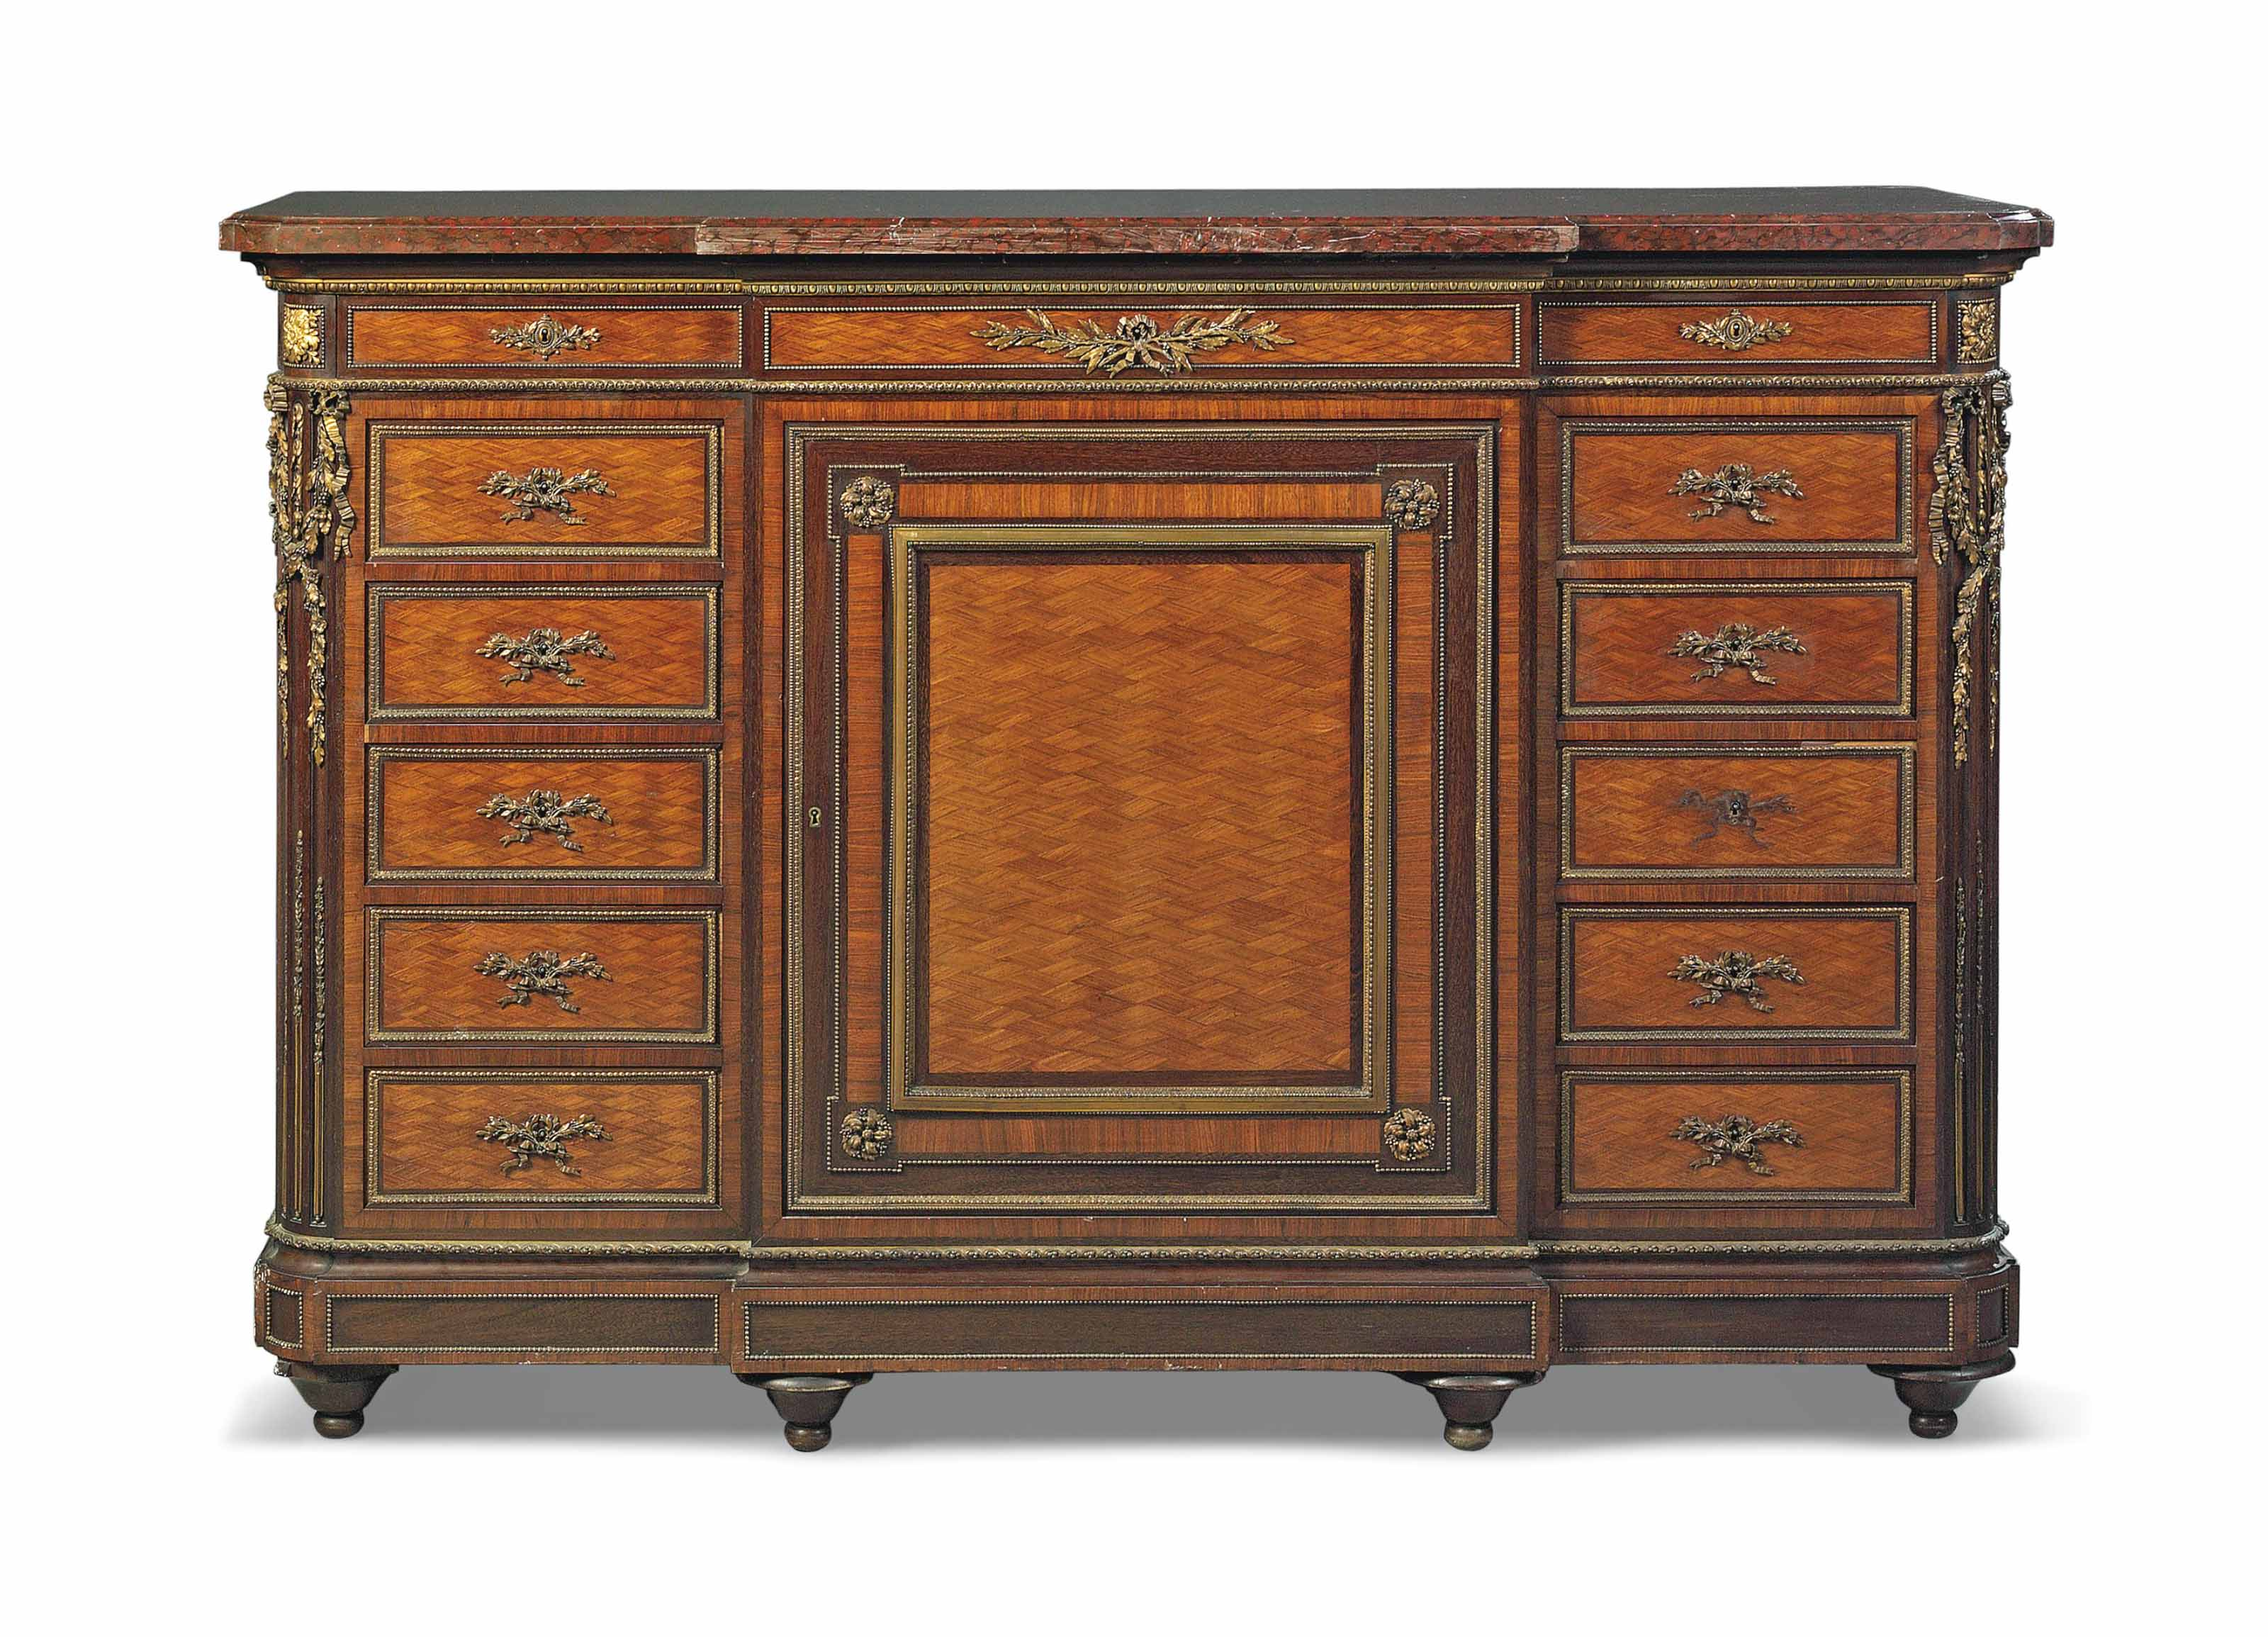 A FRENCH ORMOLU-MOUNTED MAHOGANY AND SATINE PARQUETRY MEUBLE A HAUTEUR D'APPUI